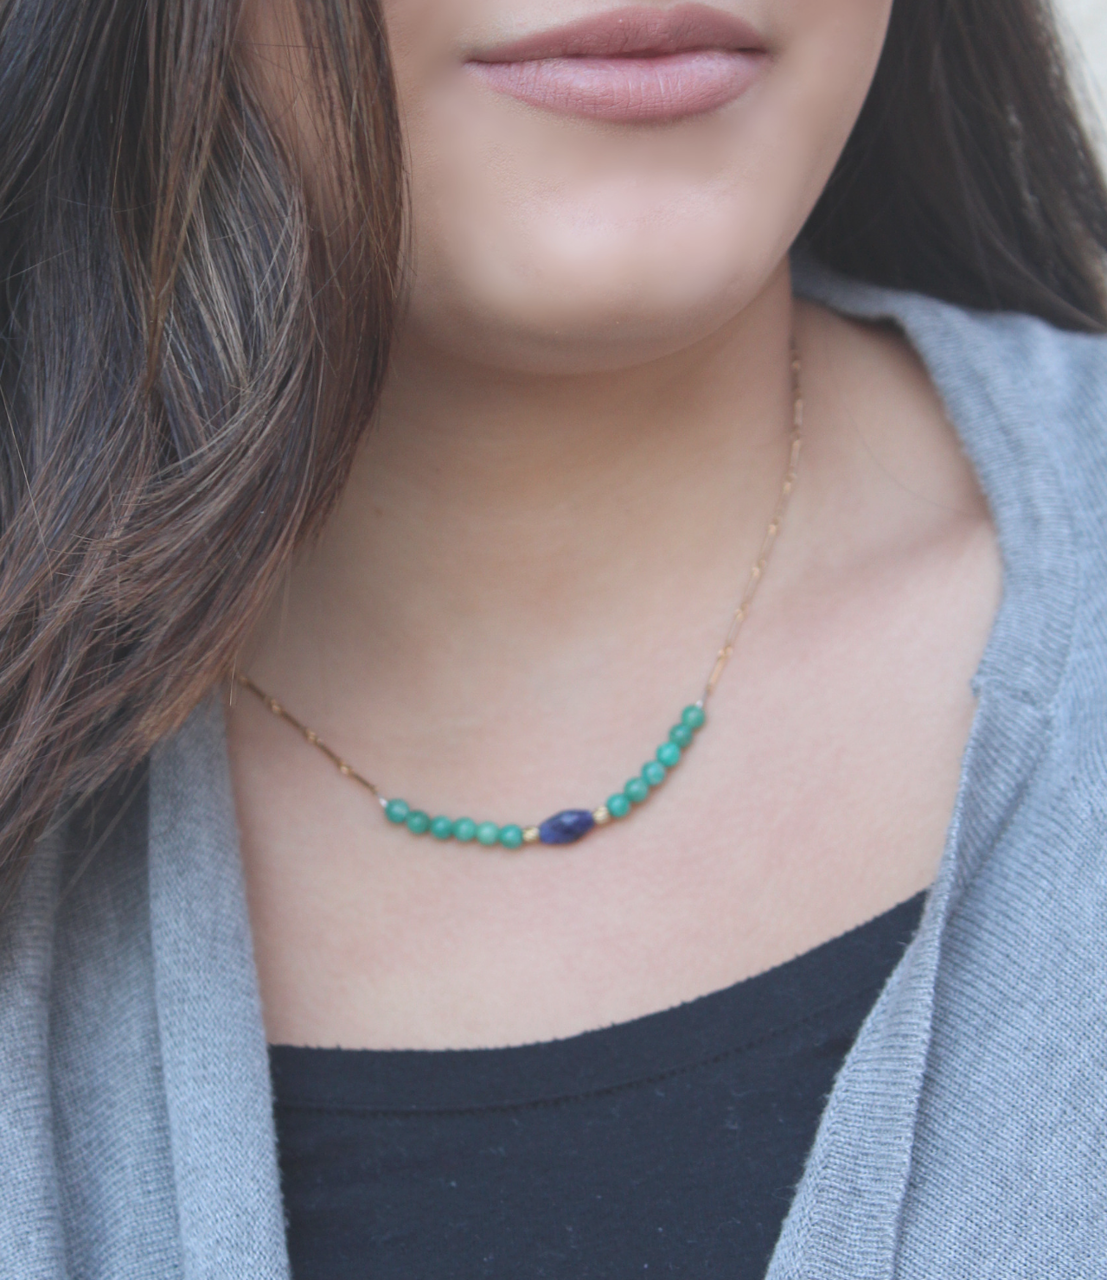 blue & green gemstone gold chain necklace on dark haired model